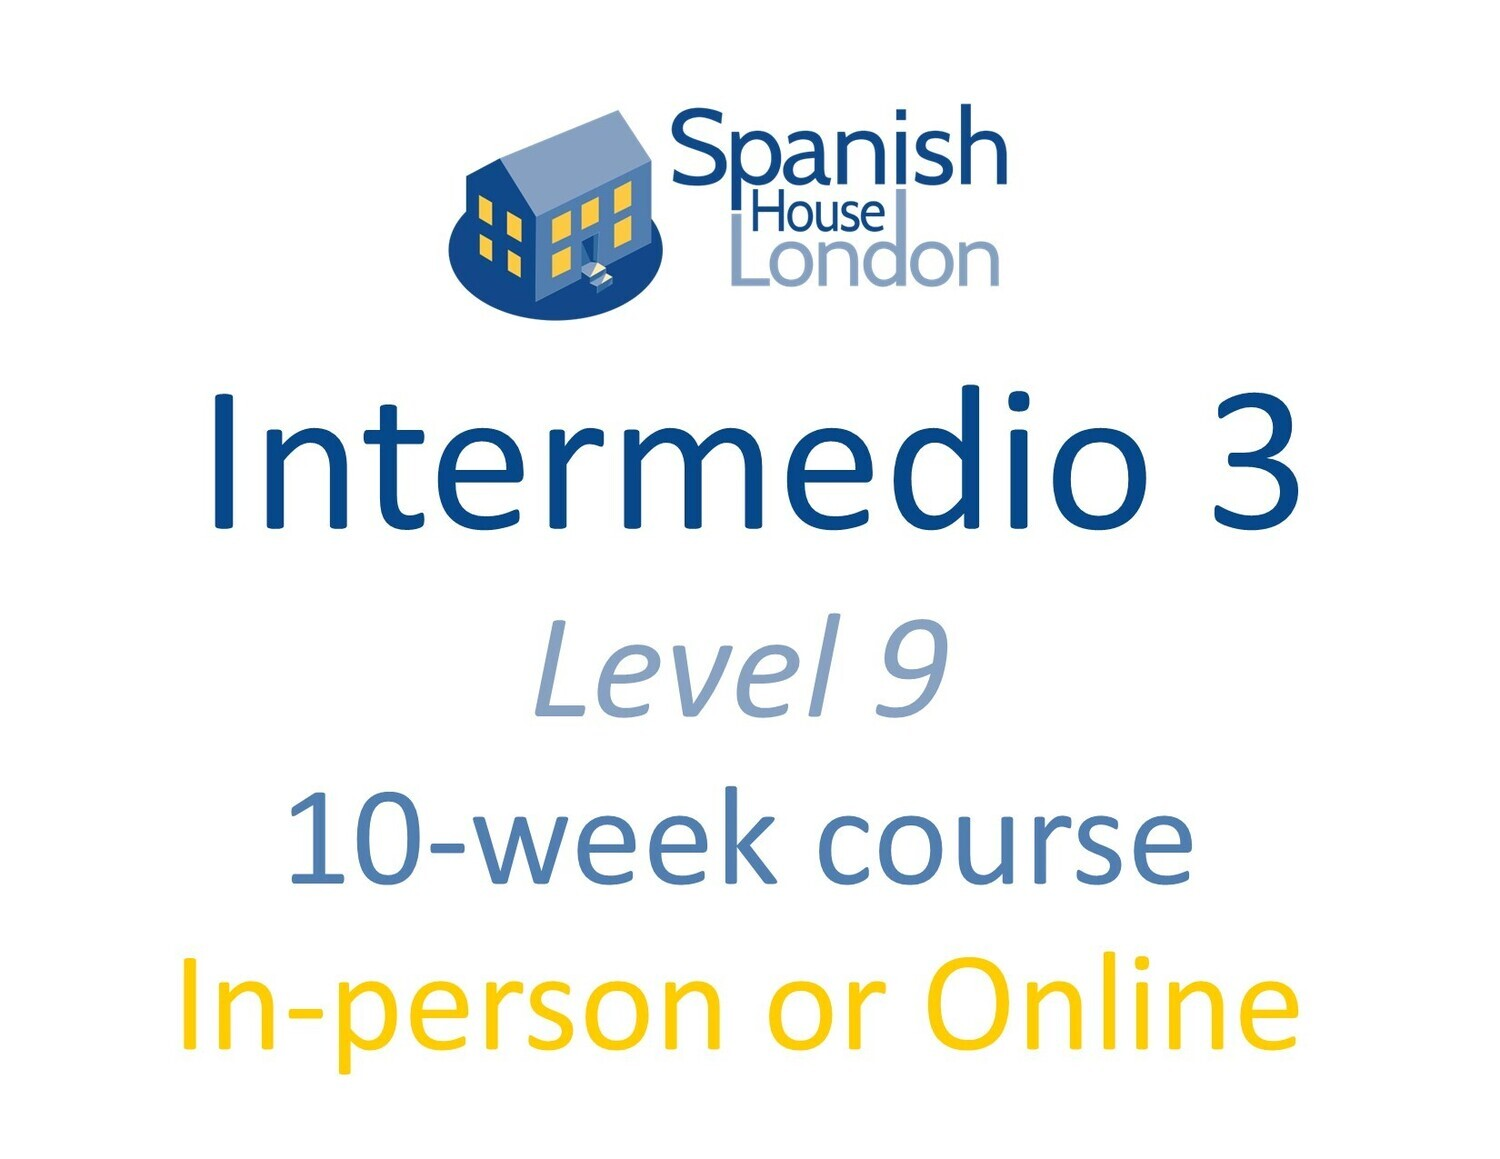 Intermedio 3 Course starting on 13th September at 6pm in Clapham North